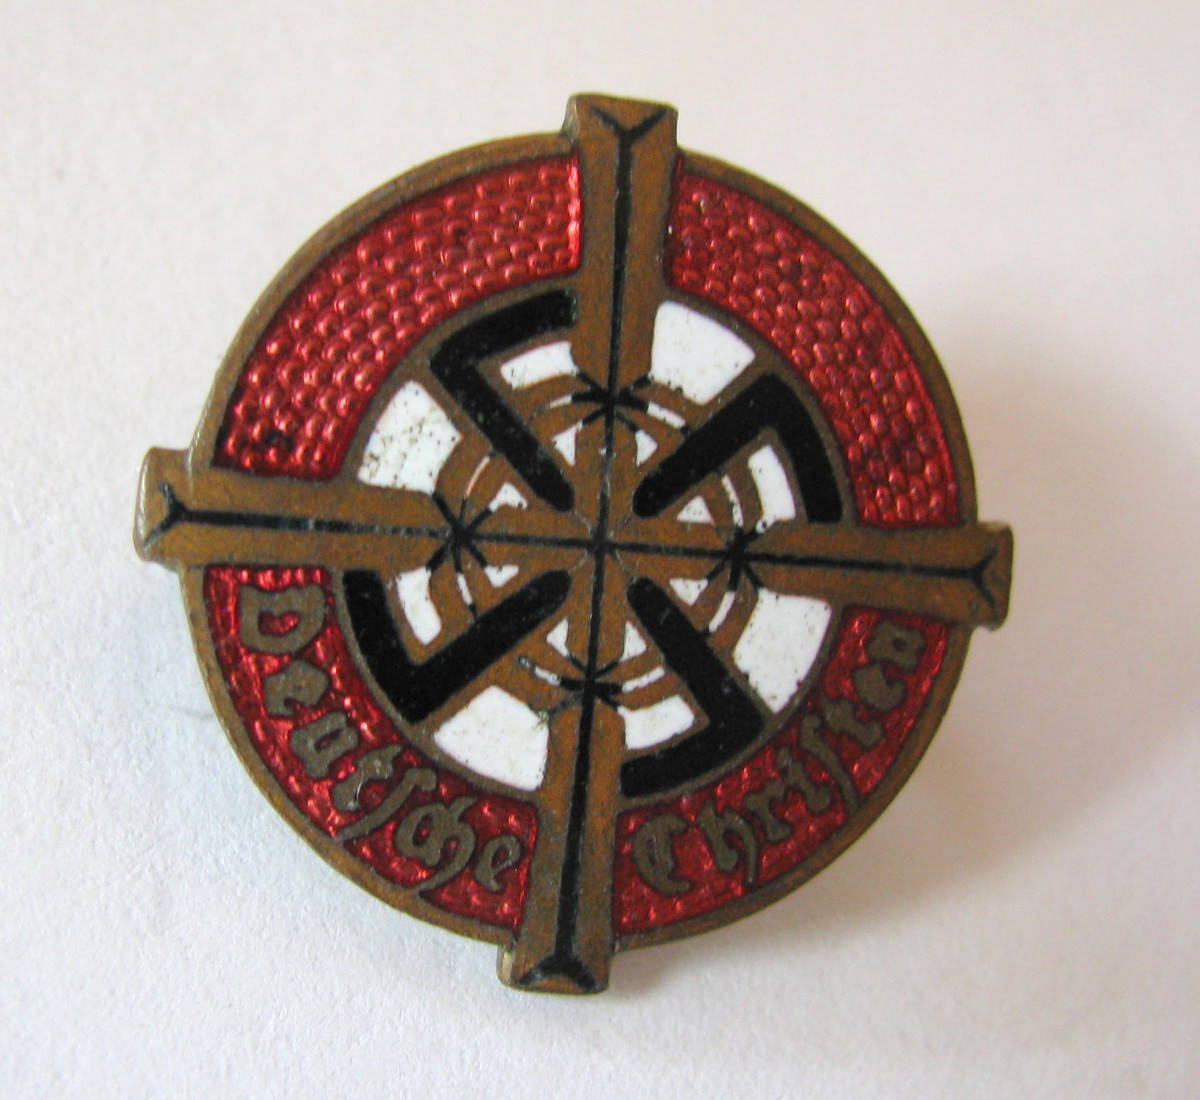 An example of the Deutsche Christen enamel membership pin carried the name of the group with a richly decorated golden cross on red and white field.